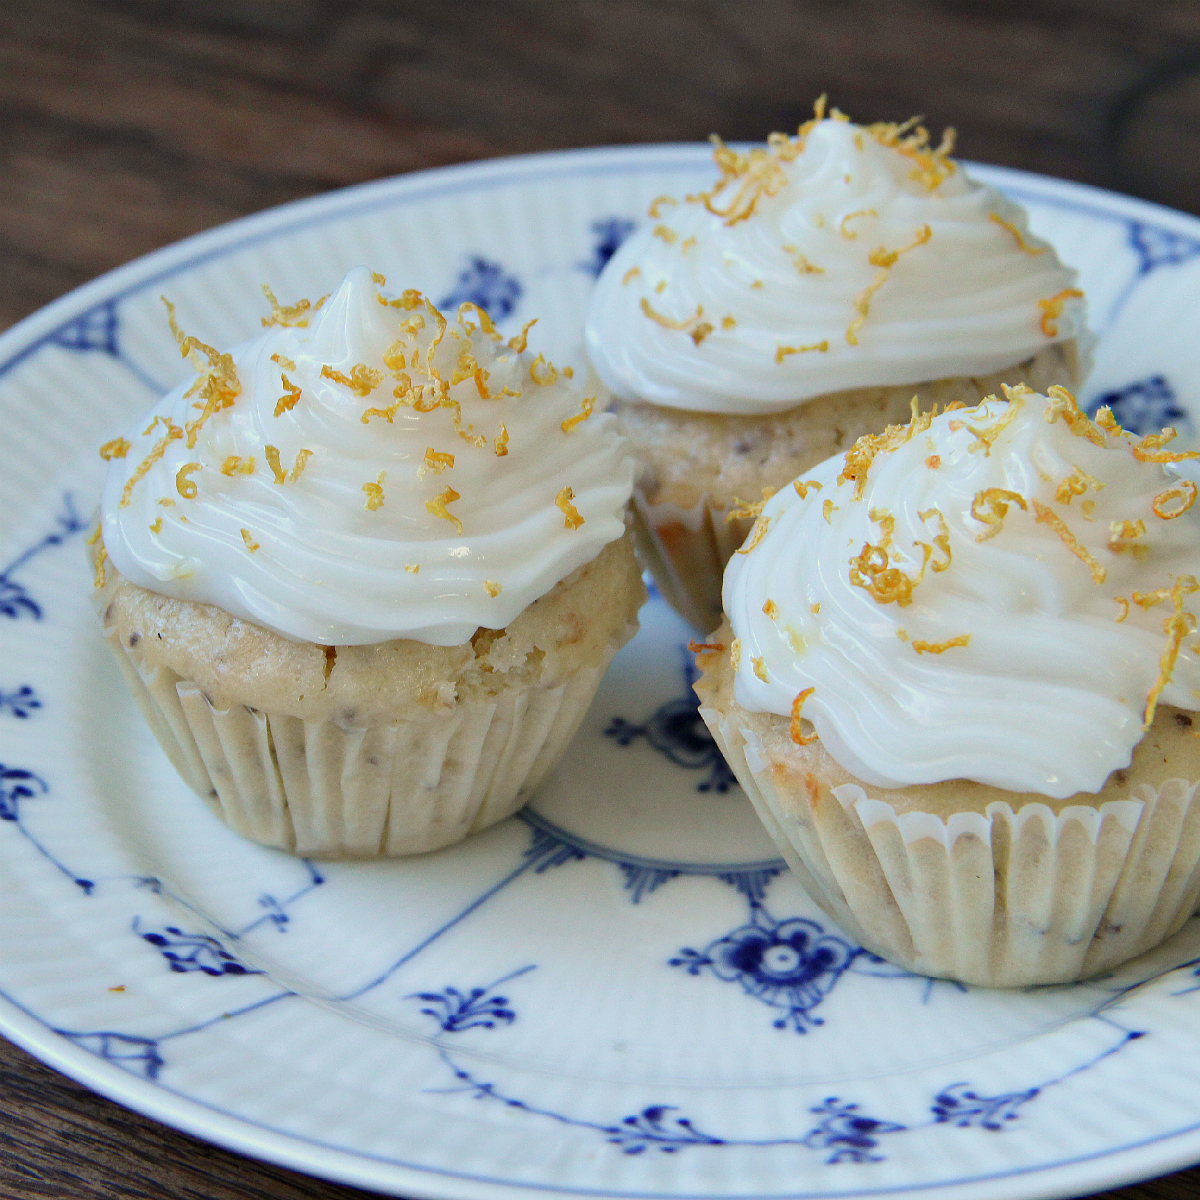 Vegan Lemon Cupcakes & Lemon Cream Cheese Frosting - The Vegan Eskimo